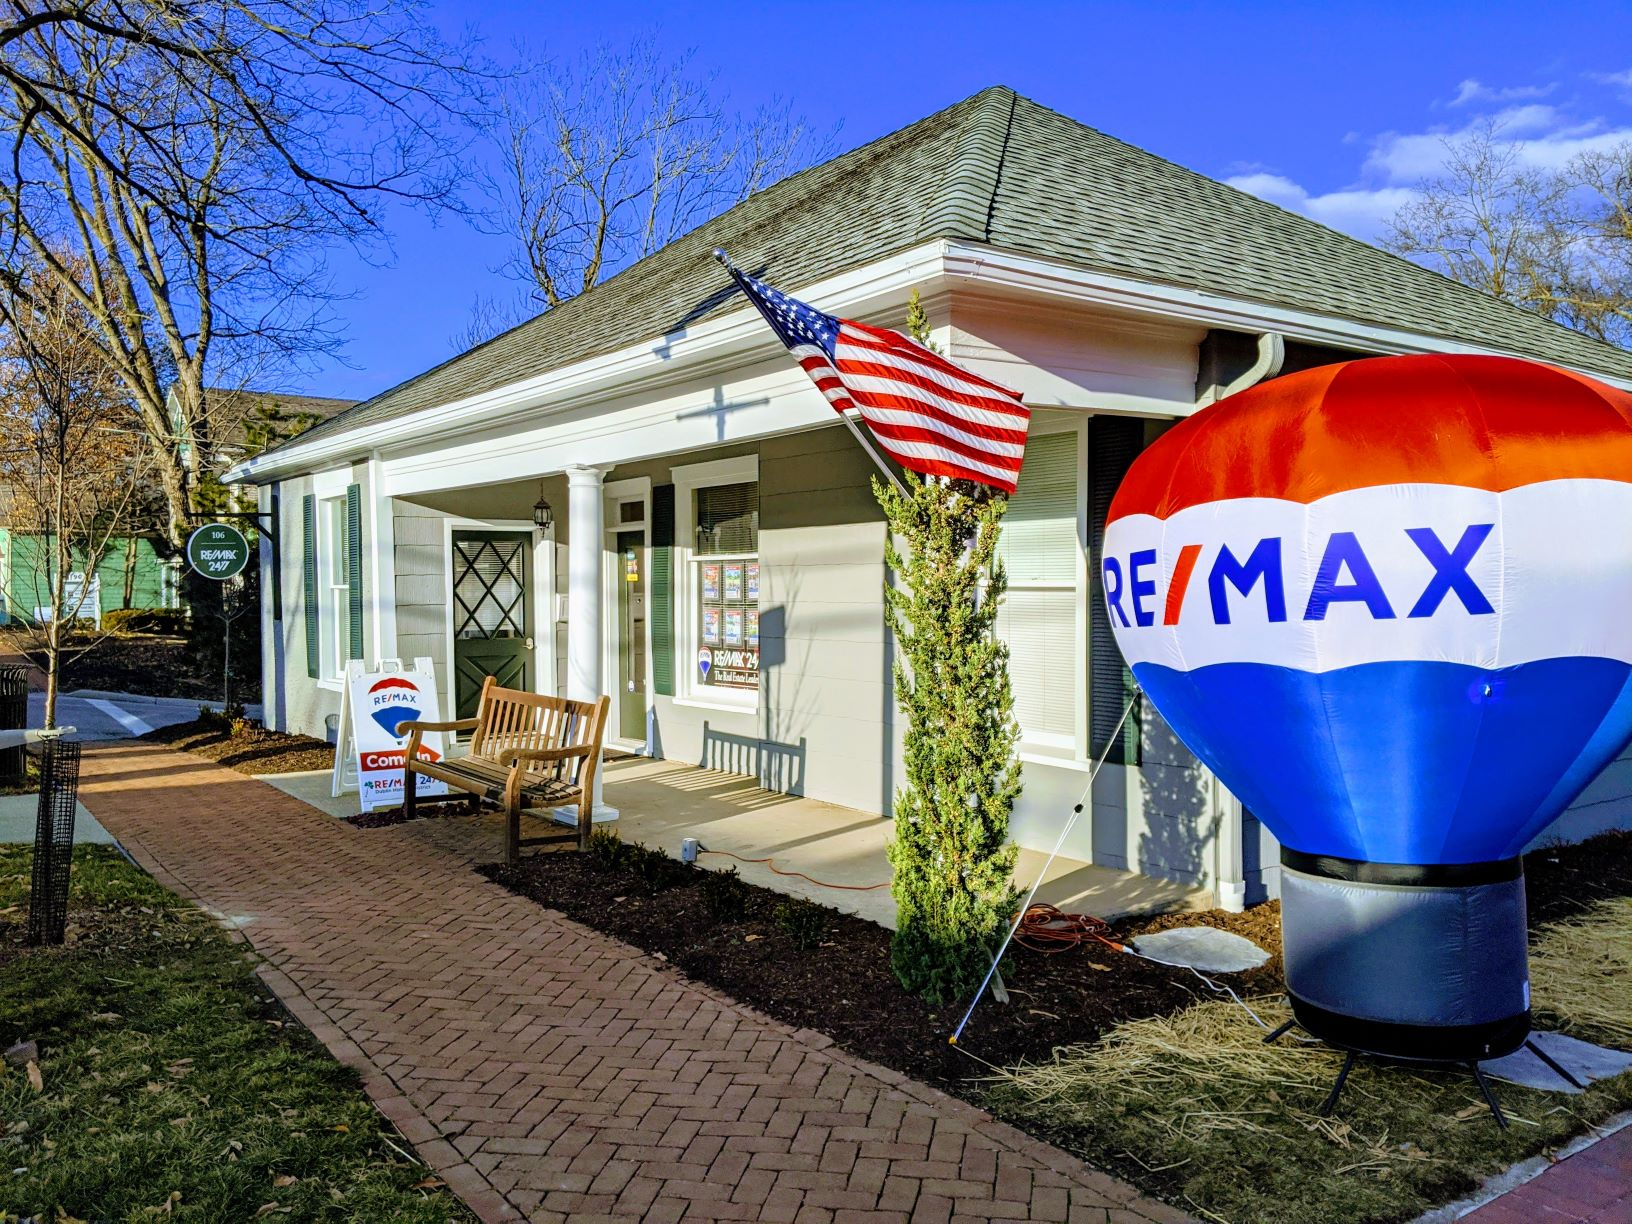 RE/MAX 24/7